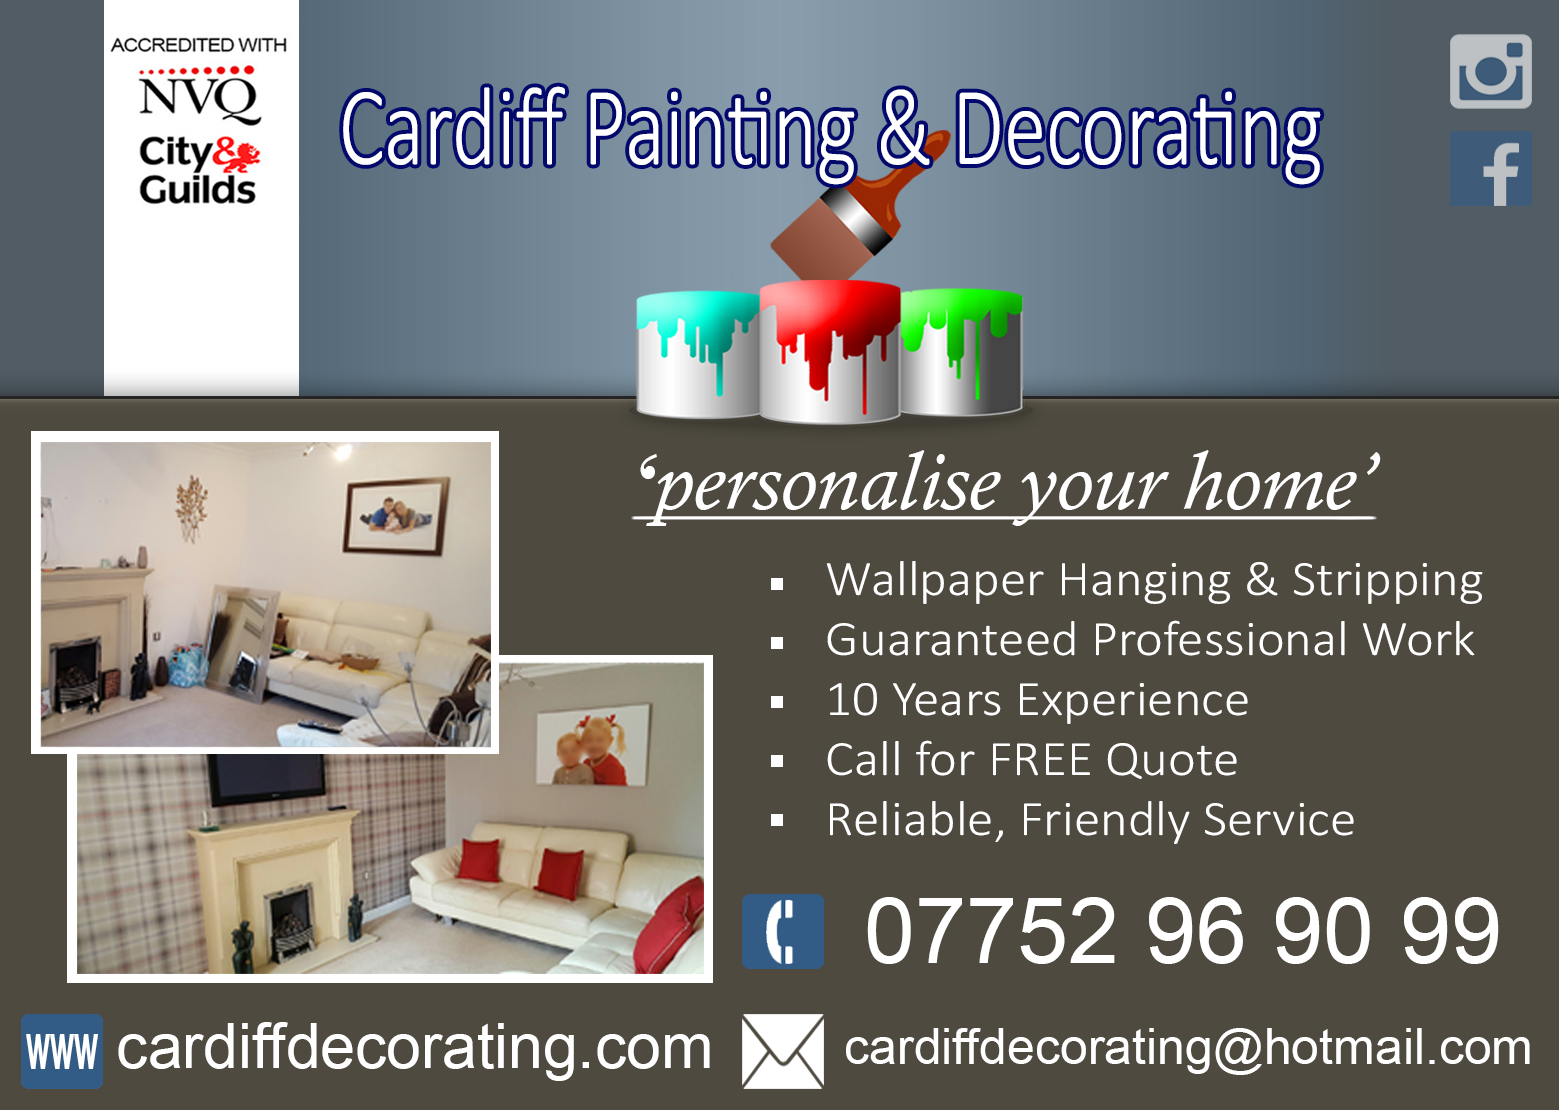 cardiffdecorating.com